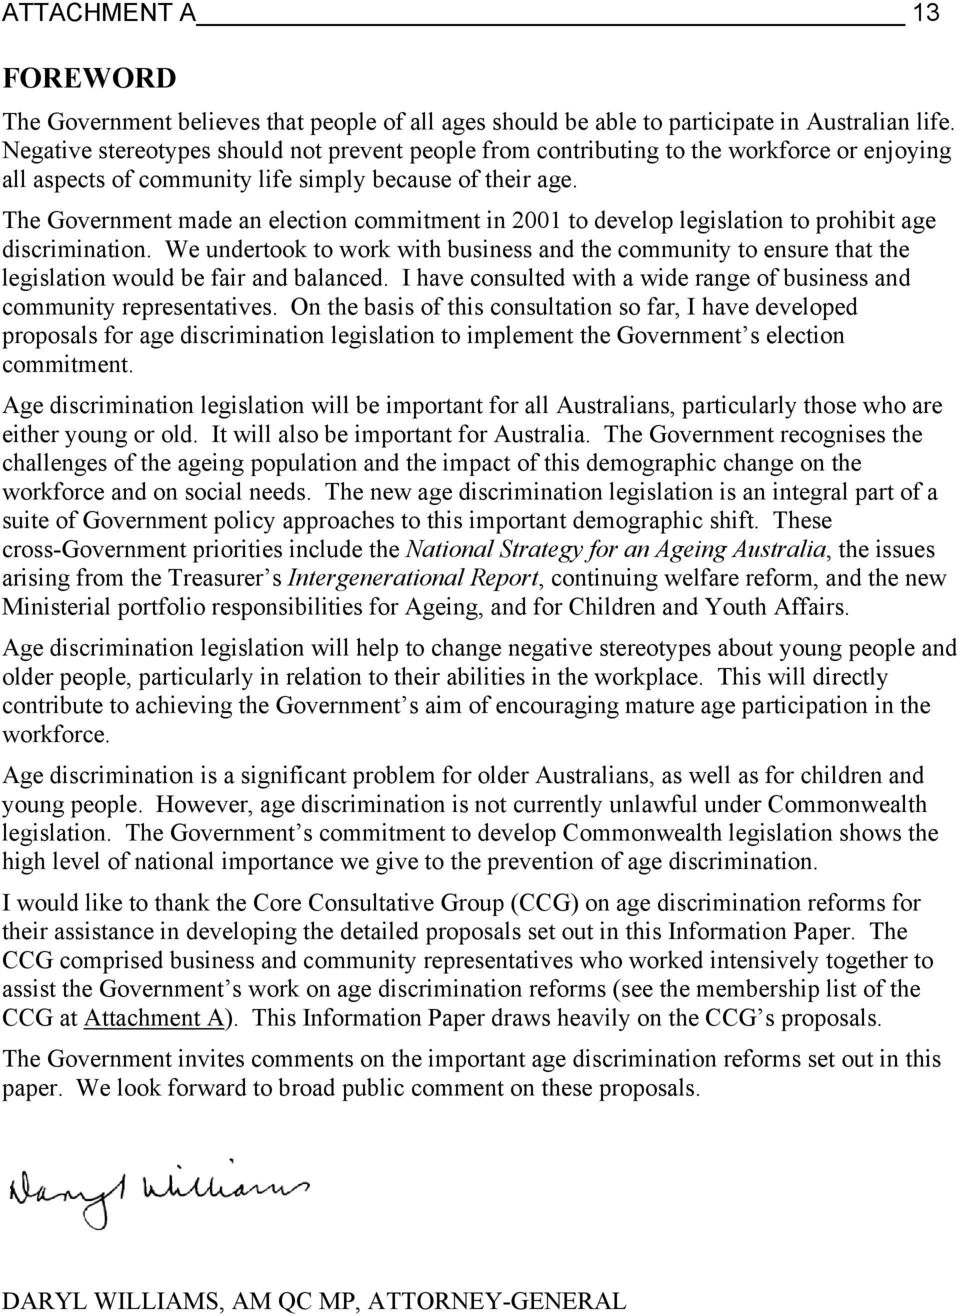 The Government made an election commitment in 2001 to develop legislation to prohibit age discrimination.